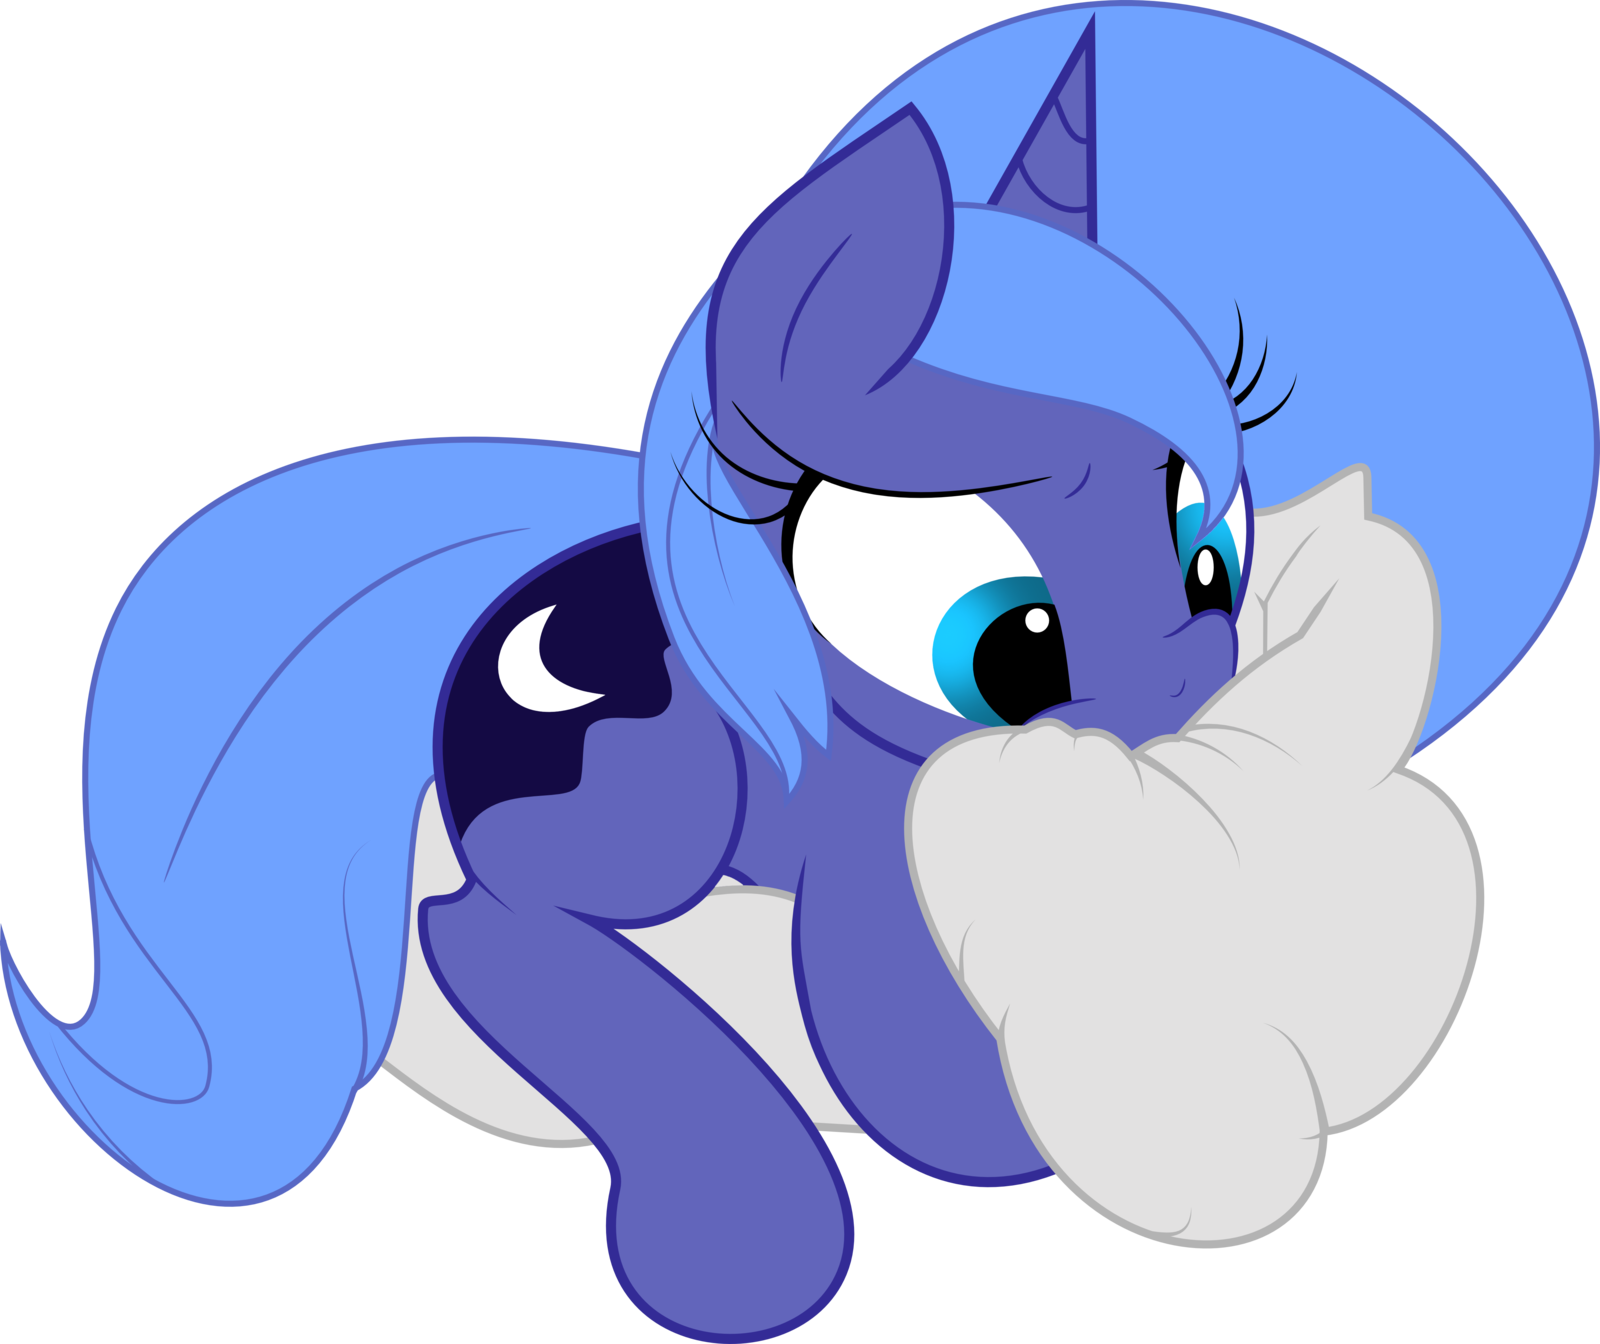 filly_luna_by_qcryzzy-d6yuwi8.png